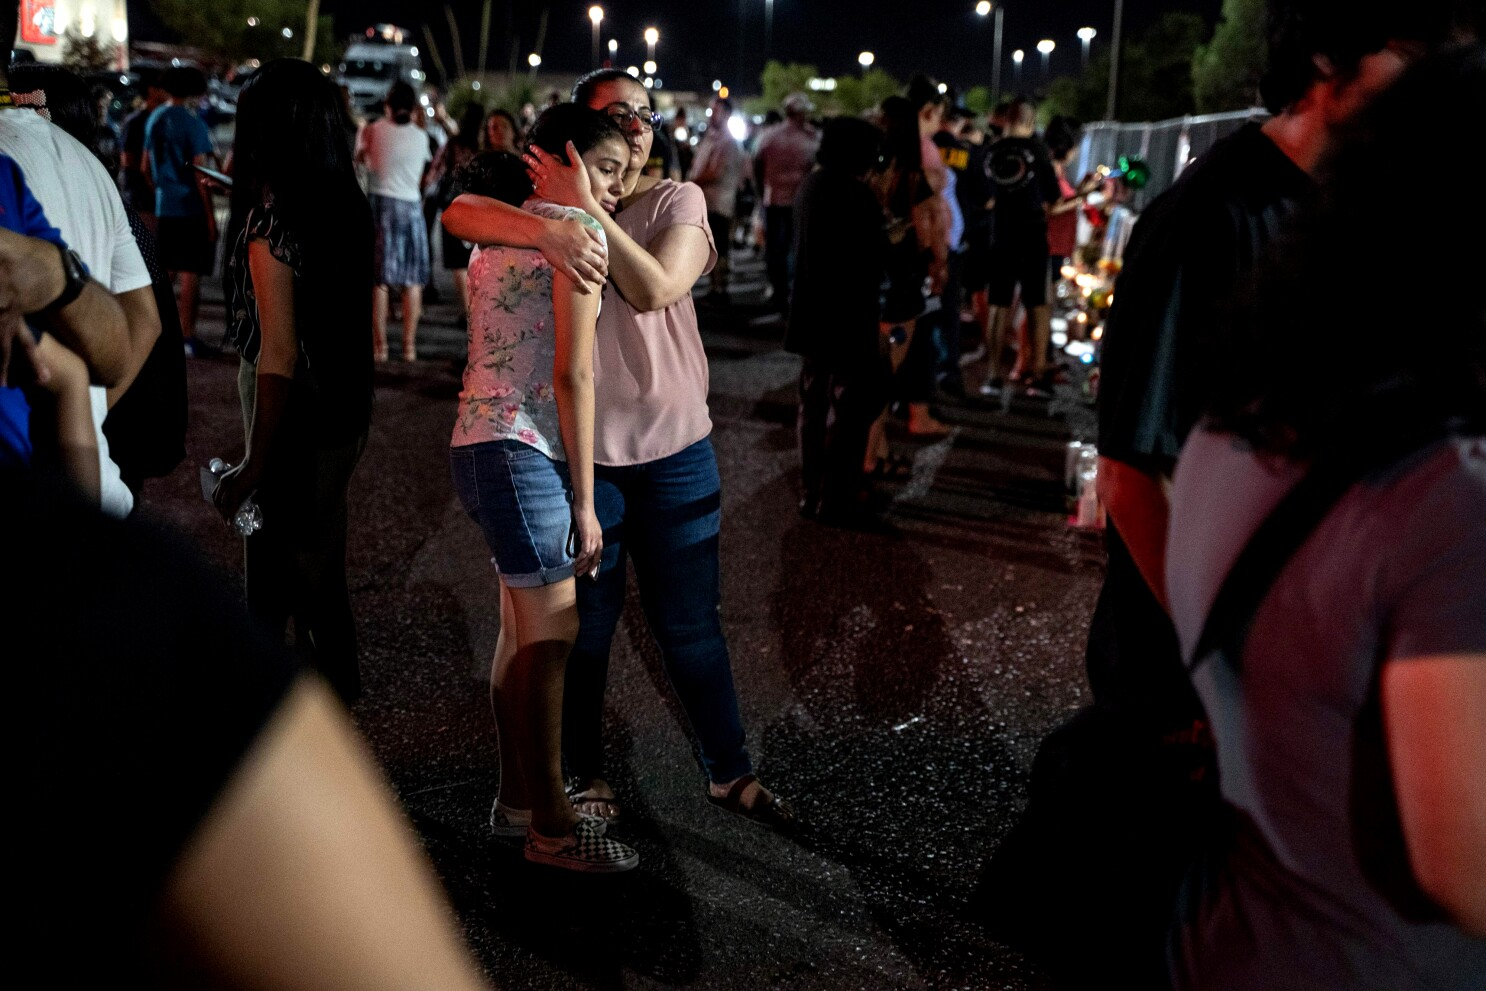 El Paso shooting victims' families, friends still in fear